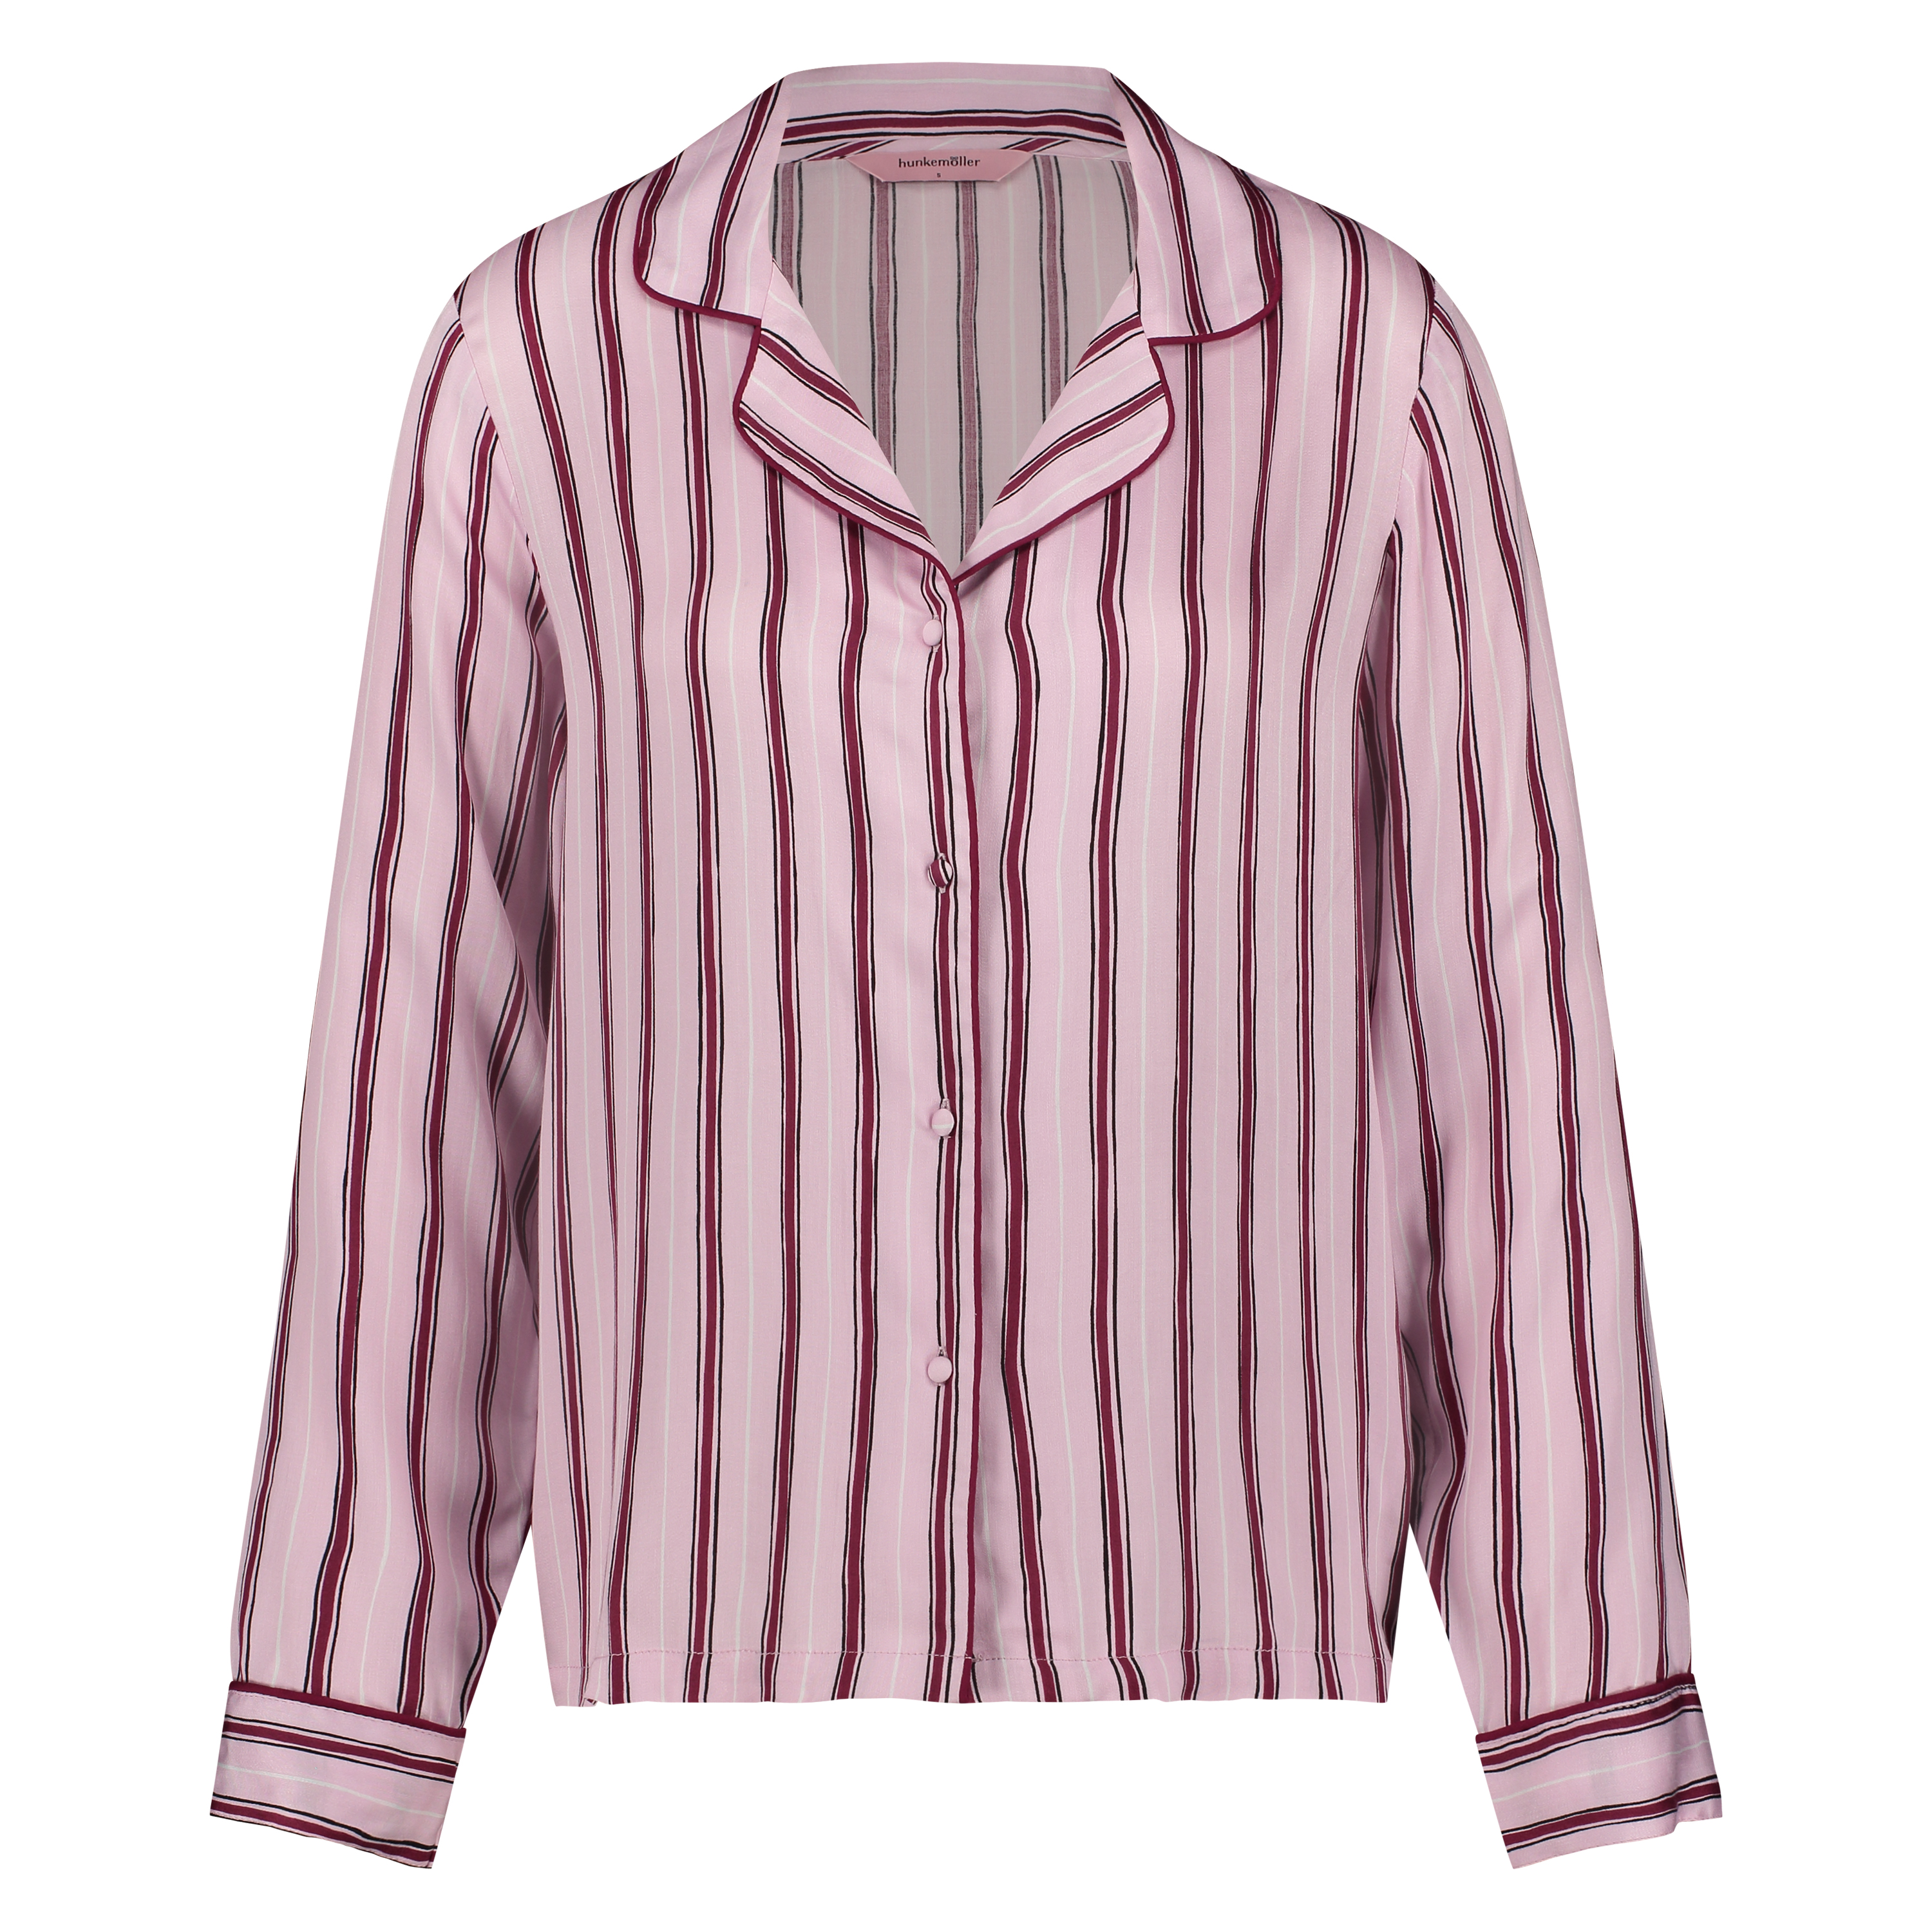 Pyjamatop Woven Striped, Rose, main